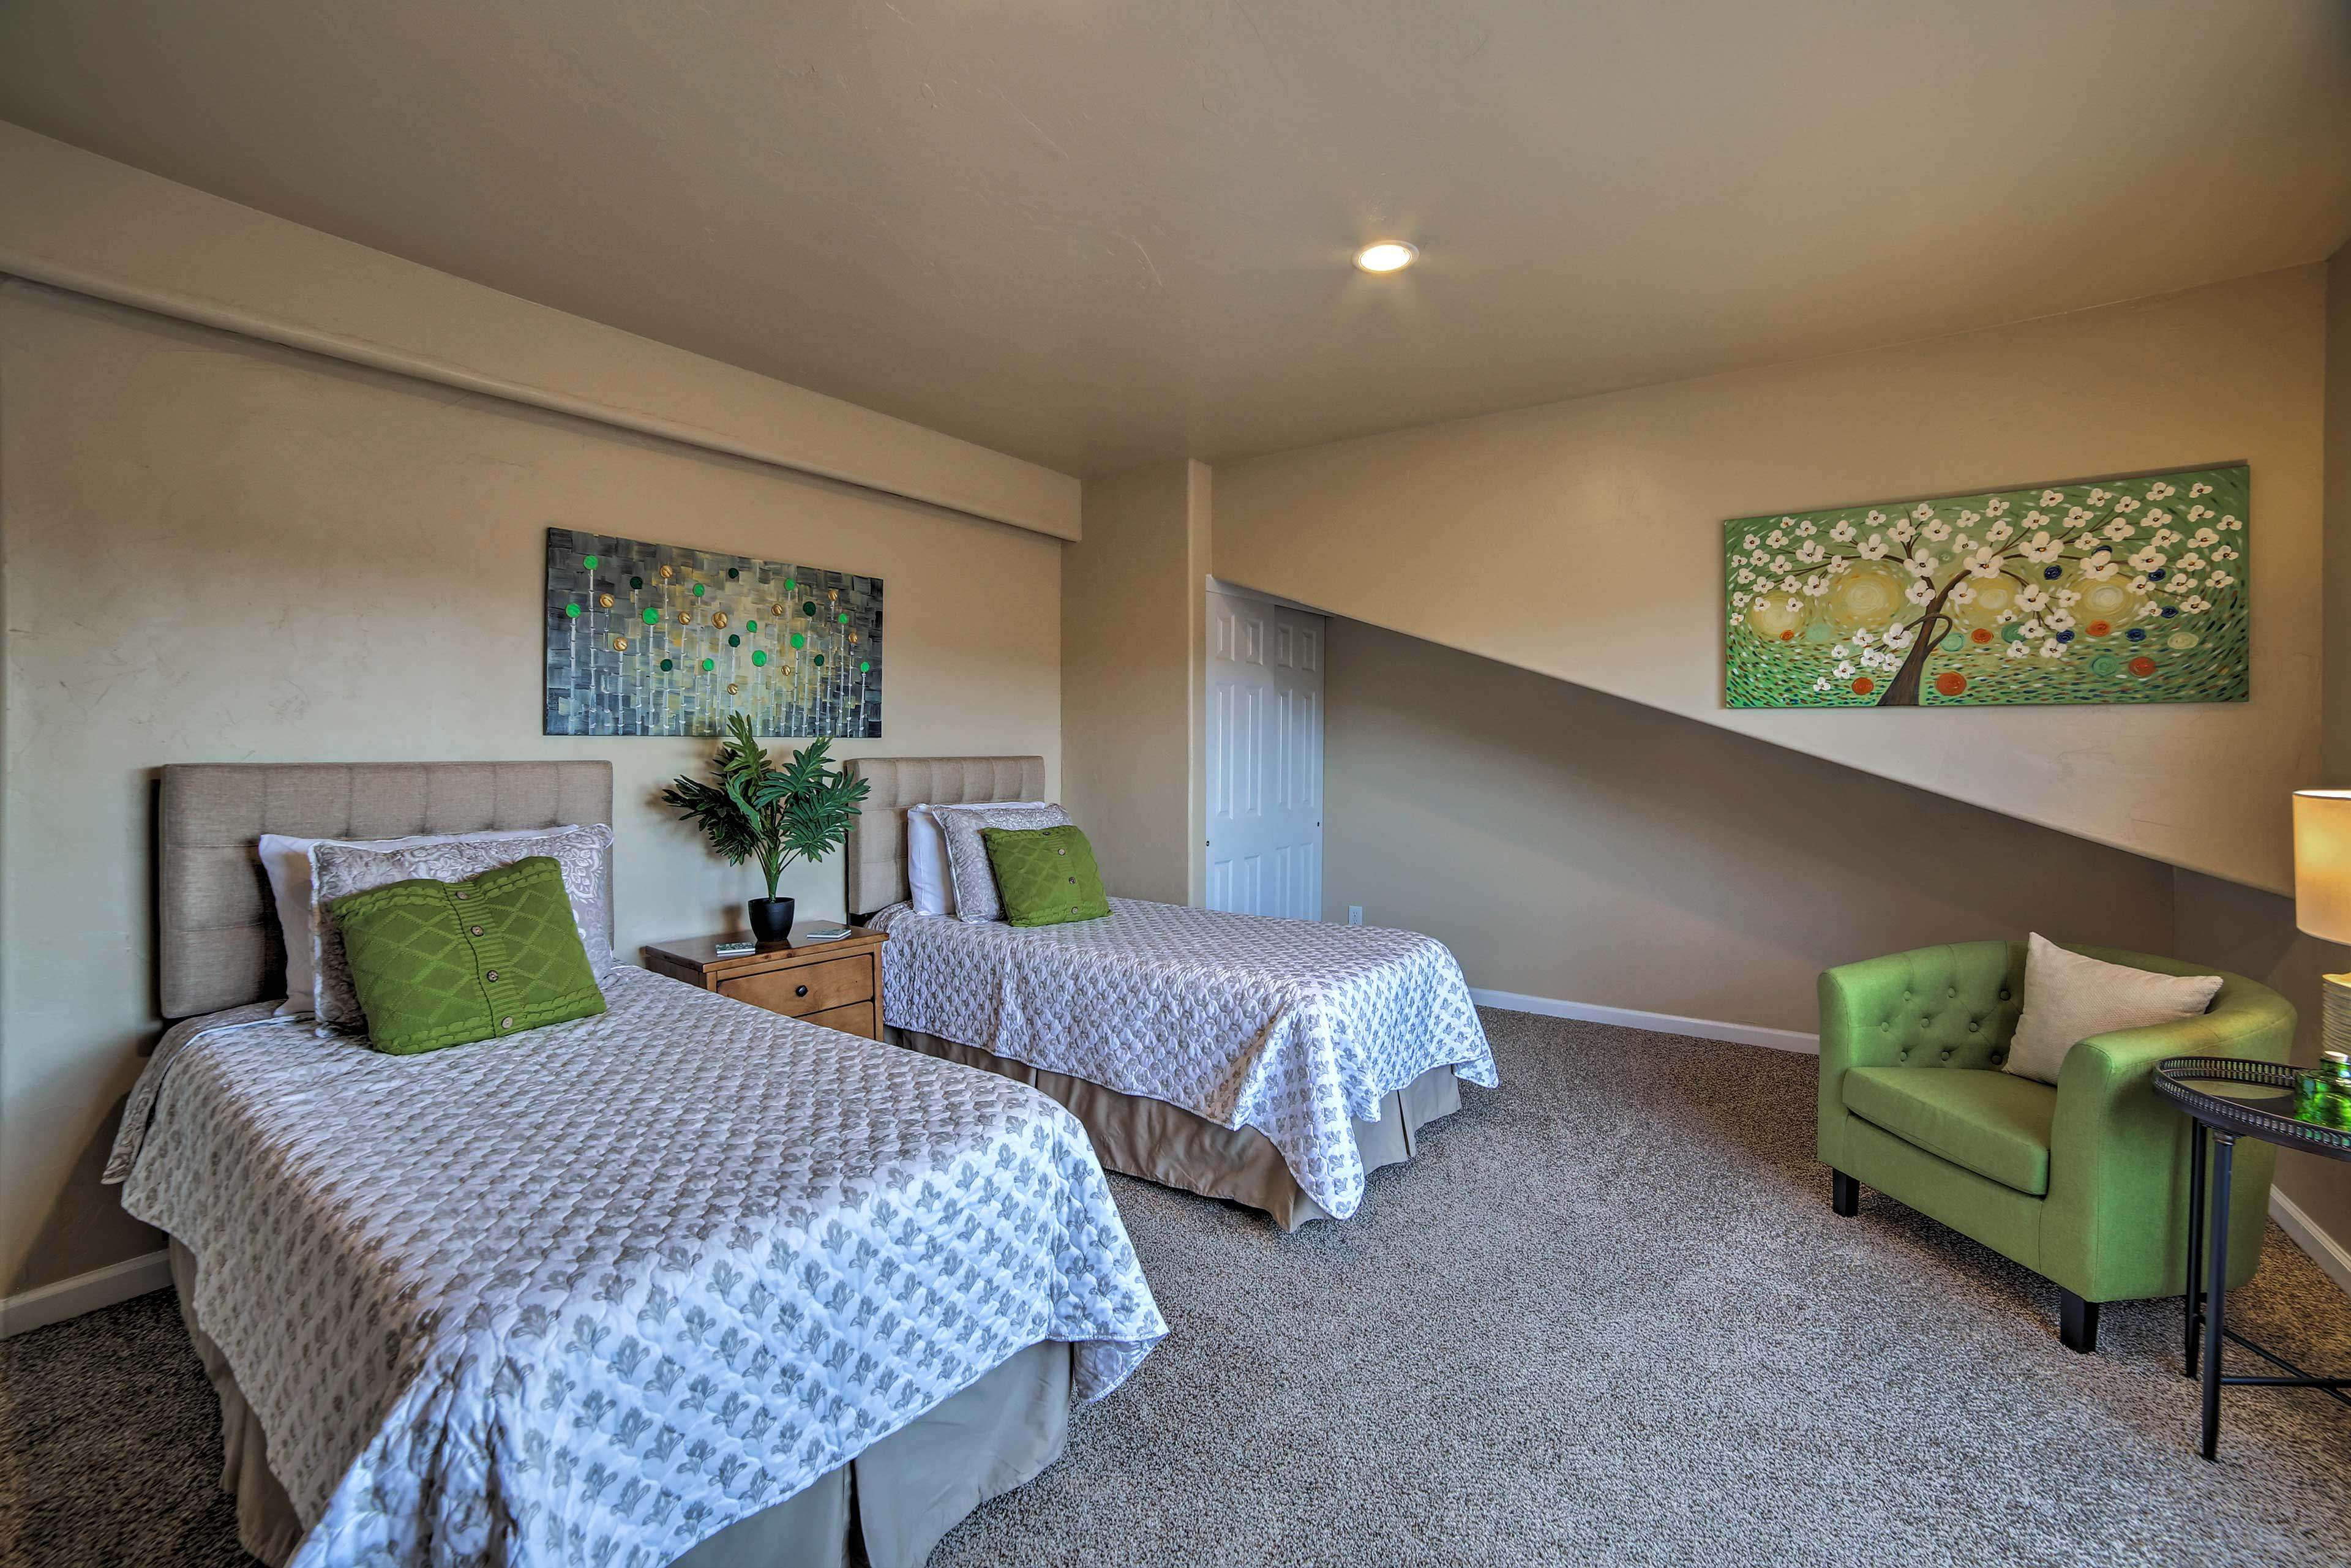 Around the corner you'll find 2 twin beds in Bedroom 4.